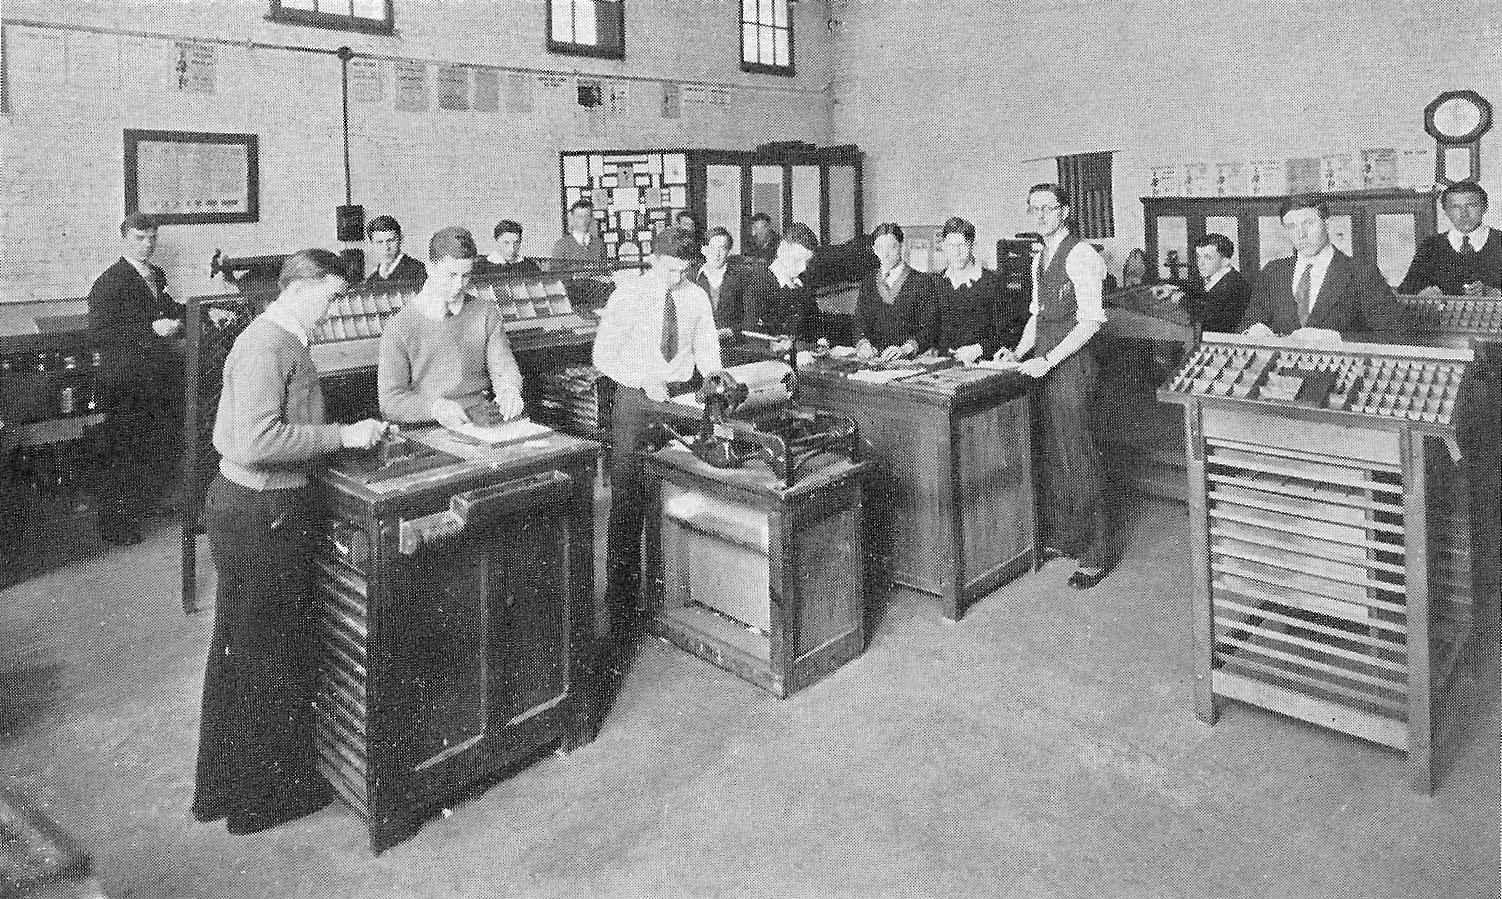 The Whiting High School Print Shop in 1931. Those pictured, left to right: Steve Kompier, Andrew Trgovich, Mike Pawlus, Richard Brown, Steve Mihalso, John Dobrowolski, Mike Evanich, Mike Bondra, Walter Muvich, John Muvich, Dennis Soos, John Hegedus, Myron Springer, B.J. Vesely, Anthony Juriga, Grant Dalton, John Kovak.